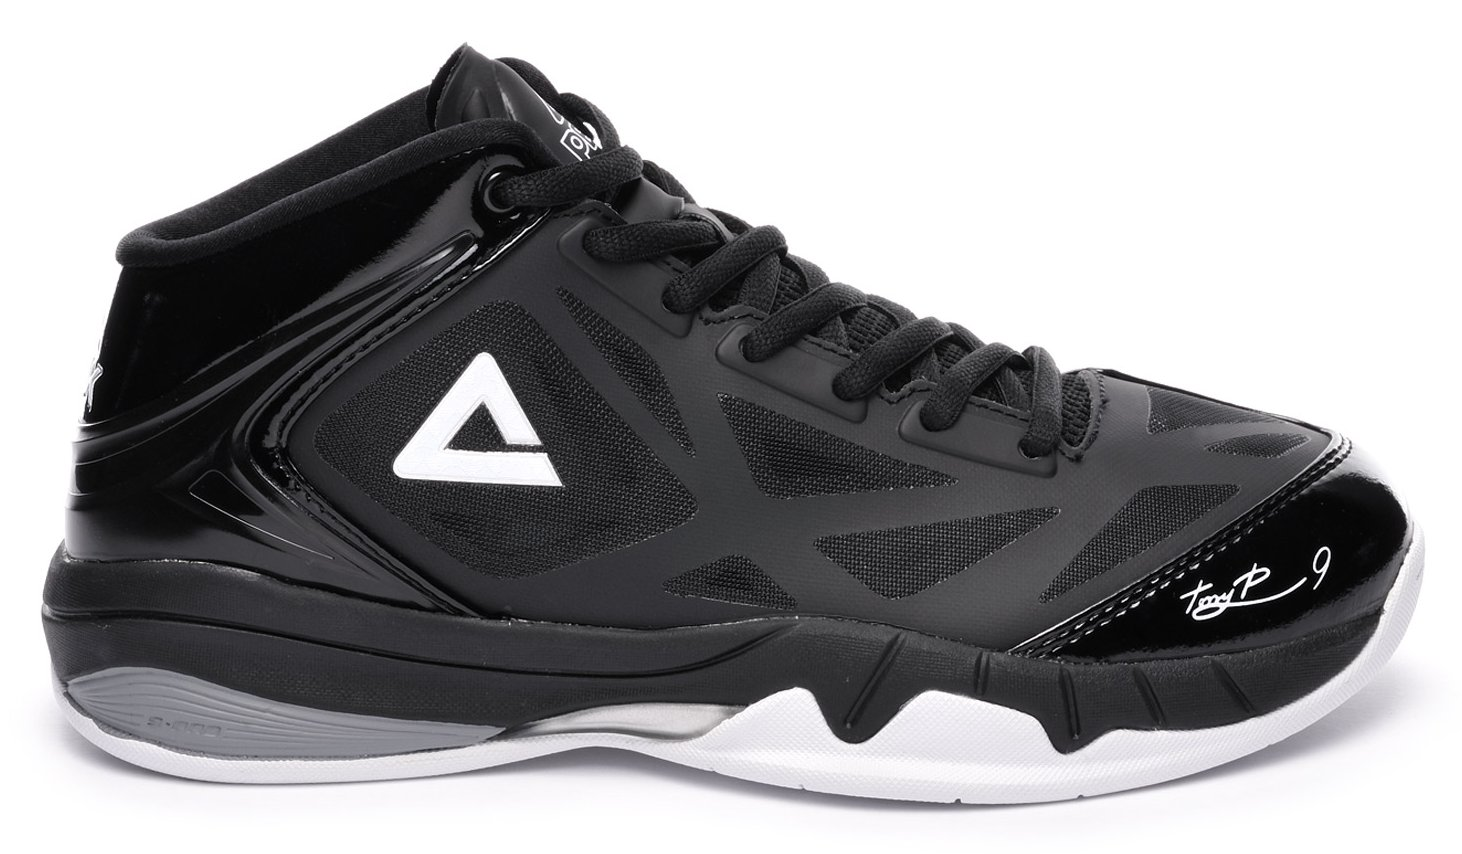 6222d16e3a09c ... chaussures basketball angers,chaussure de basketball kd,chaussure de  basketball homme pas cher ...